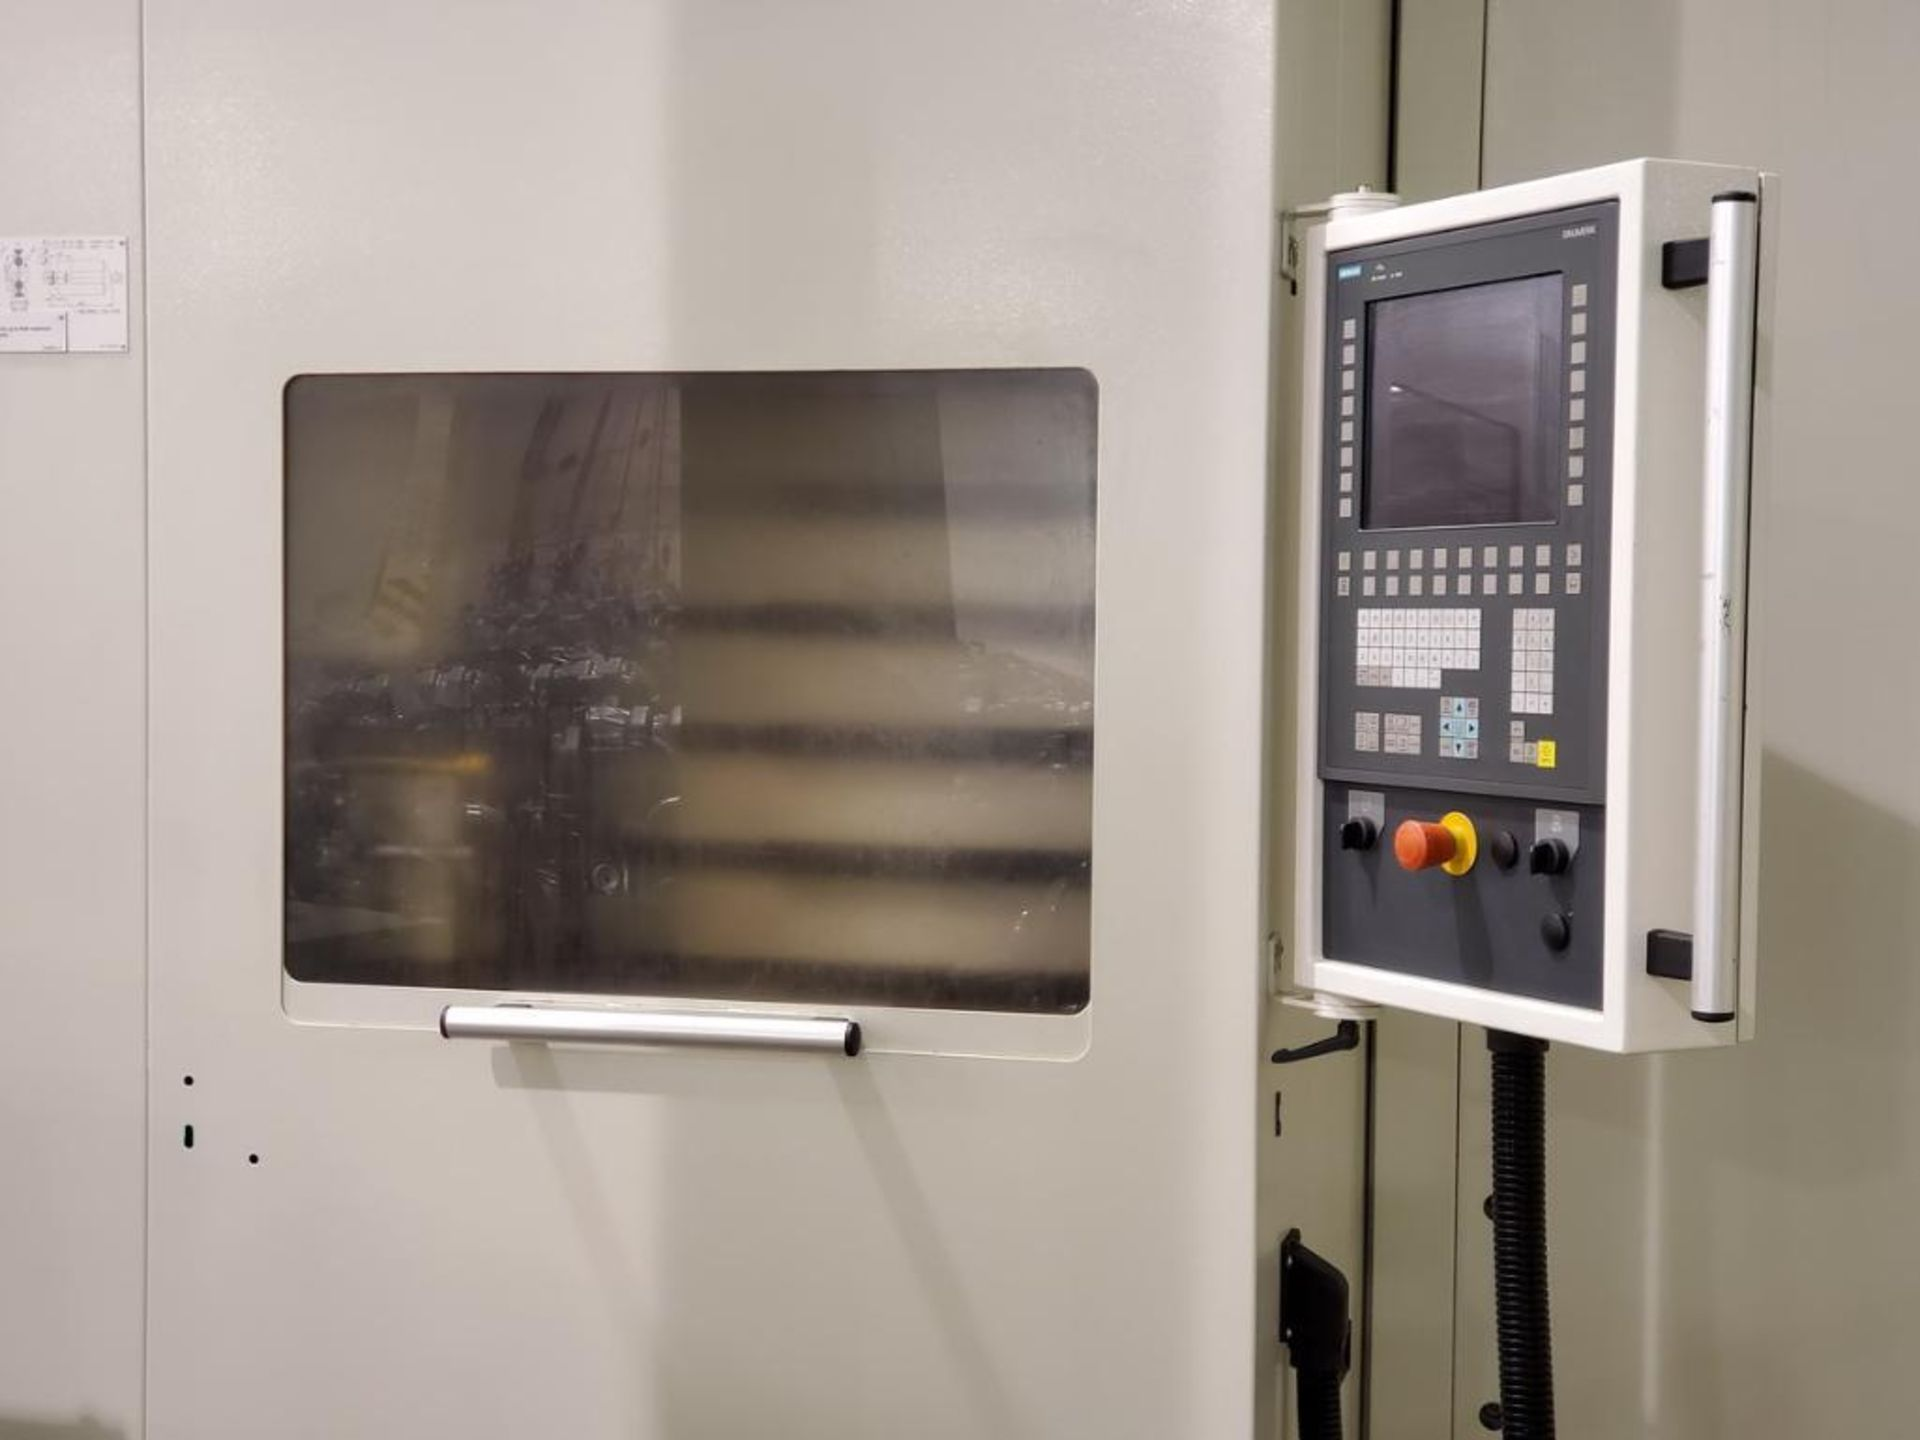 Lot 8 - 2011 Heller MCH 350 PC, Horizontal Machining Center